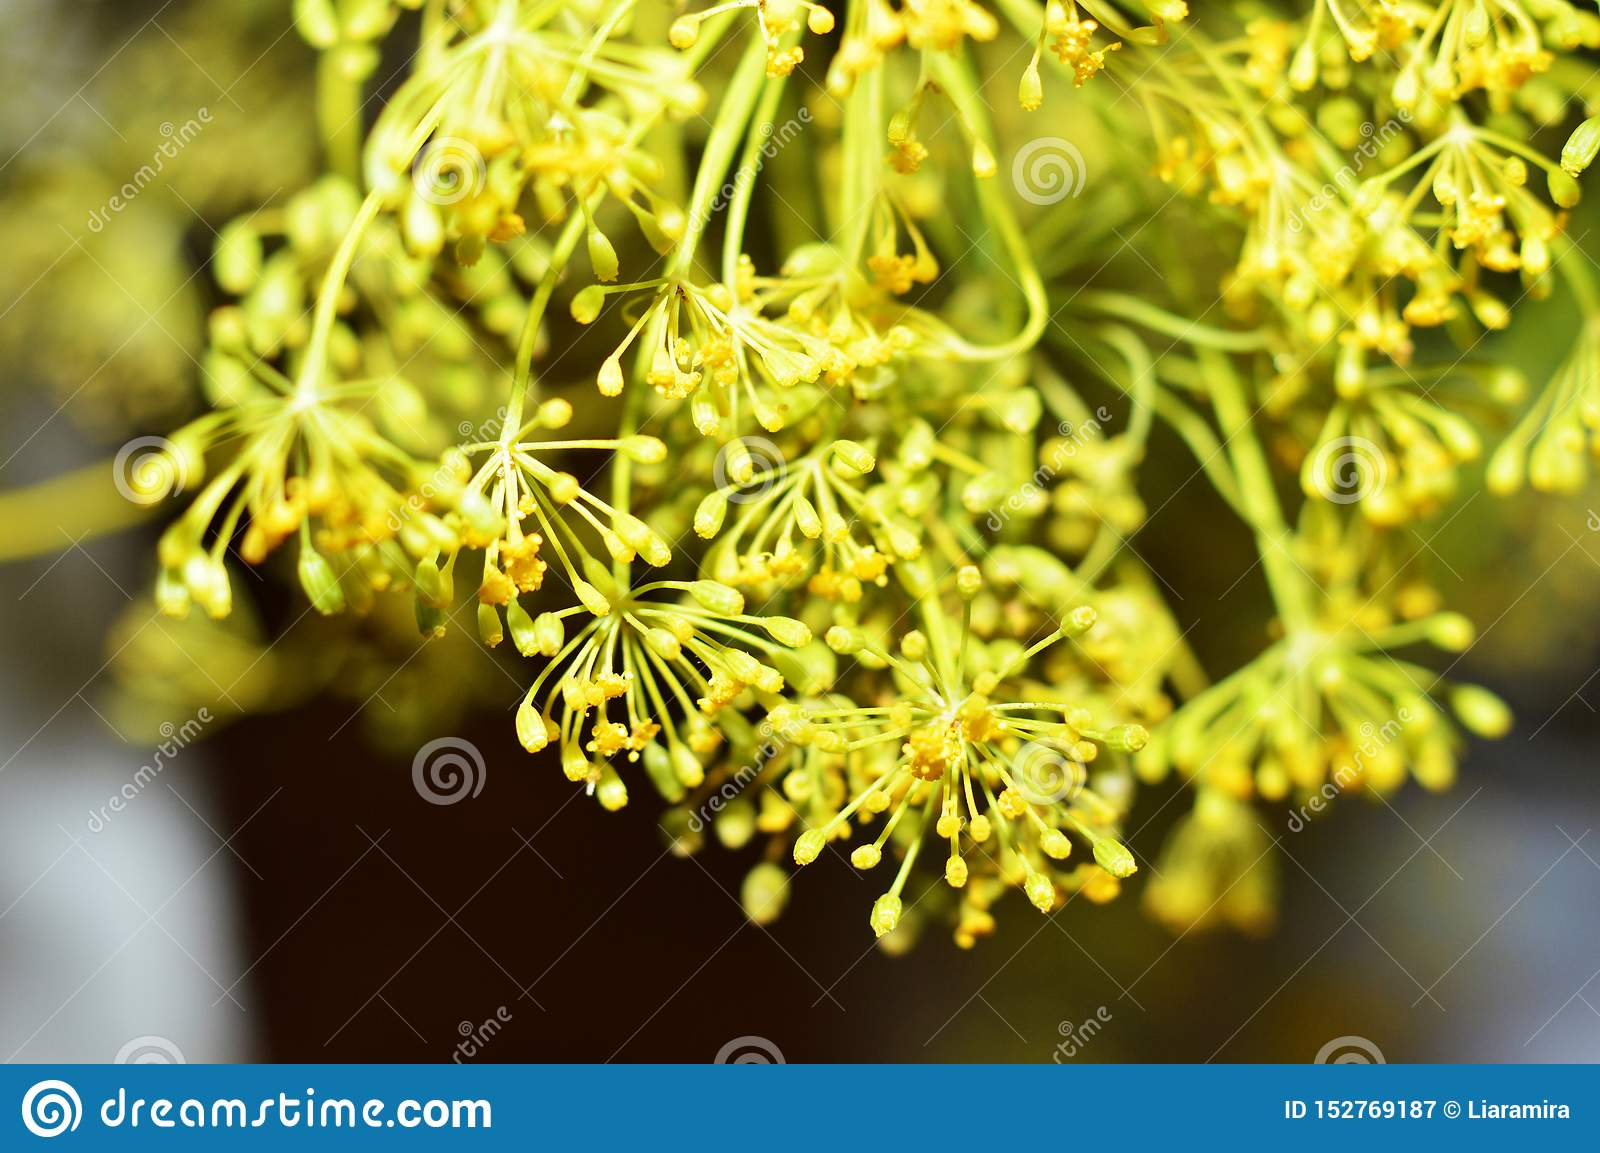 Yellow dill flowers. Macro photo of fennel.